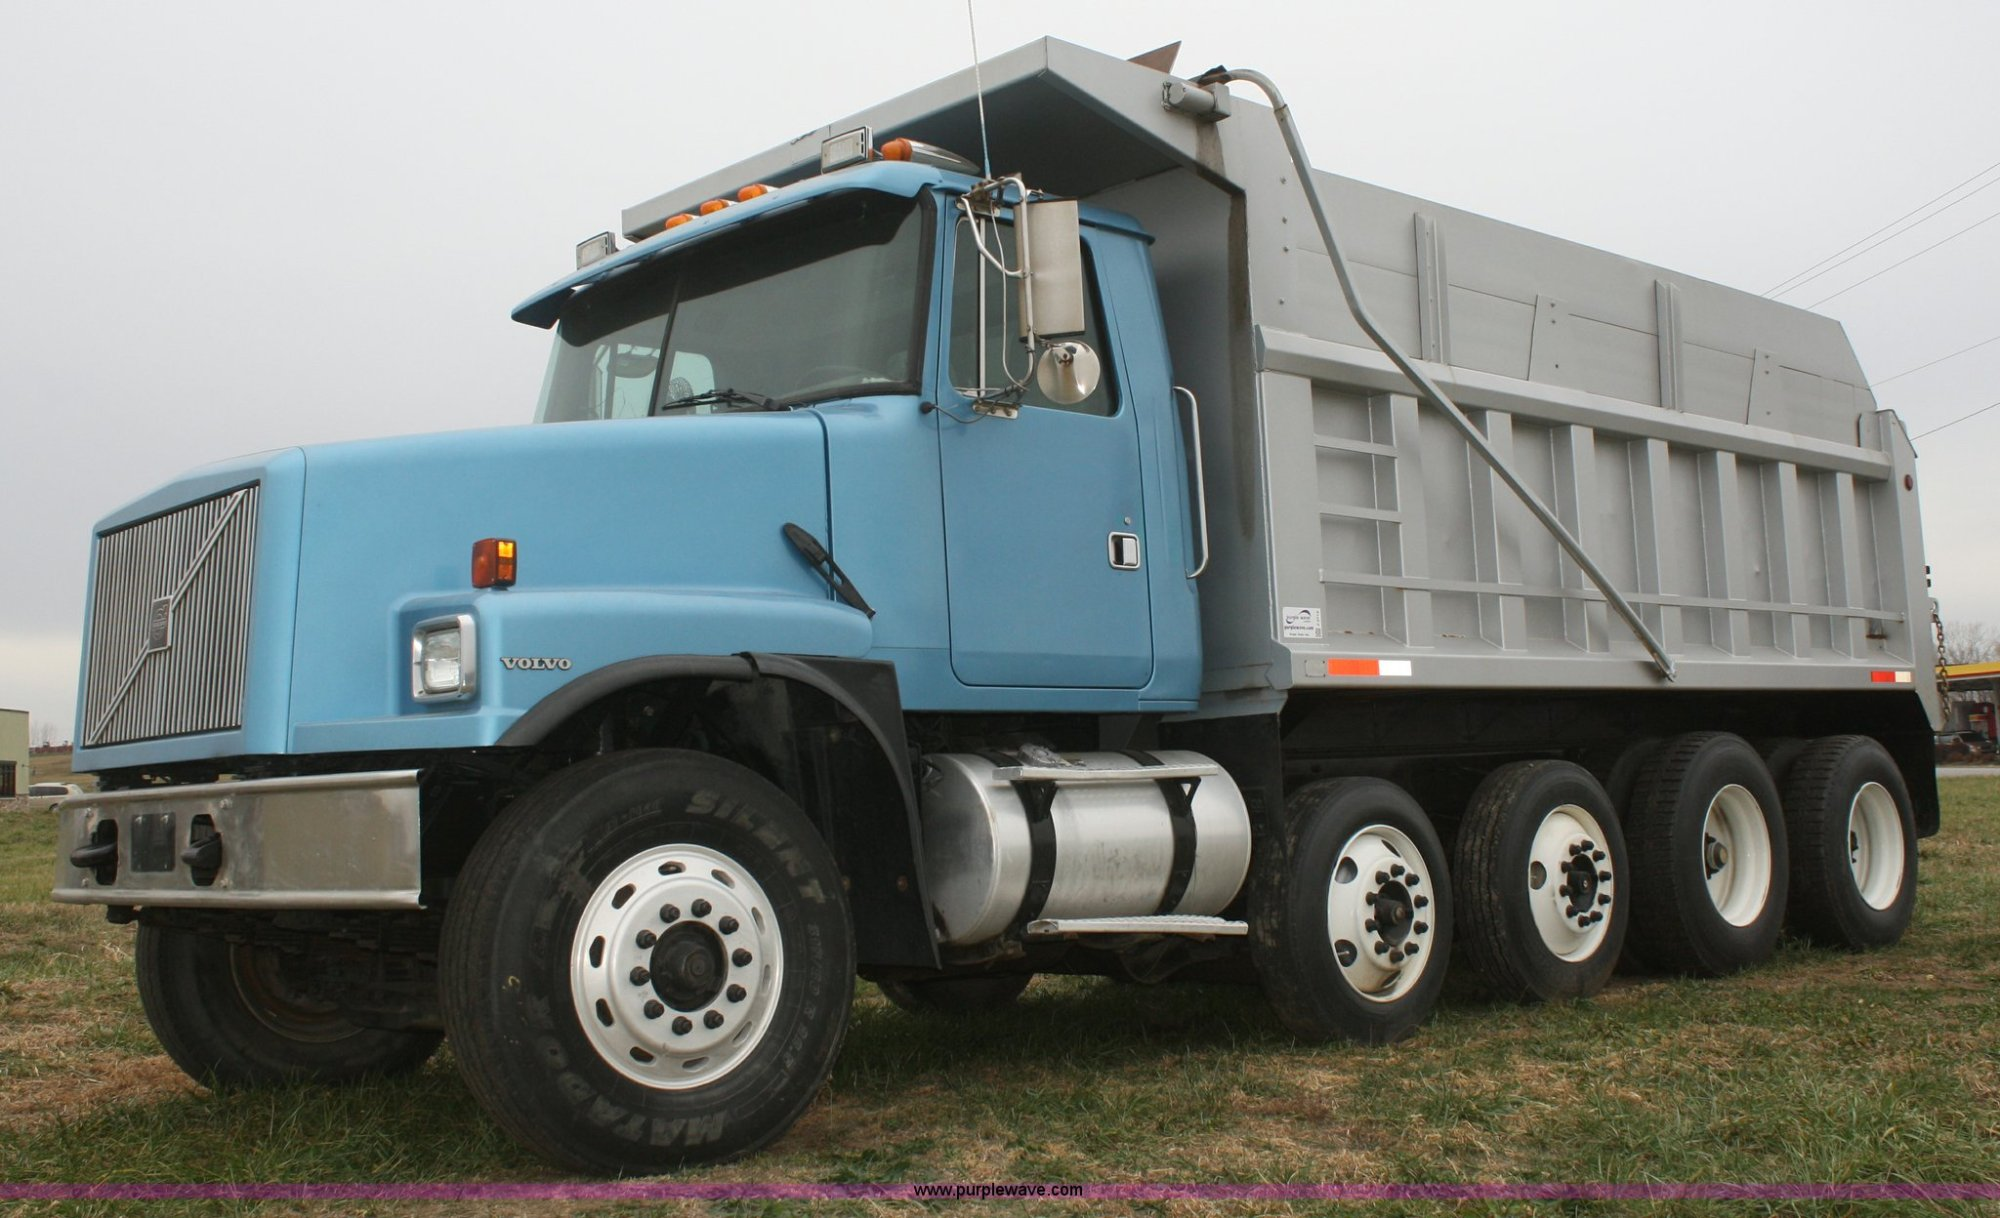 hight resolution of f2712 image for item f2712 1998 volvo wg dump truck